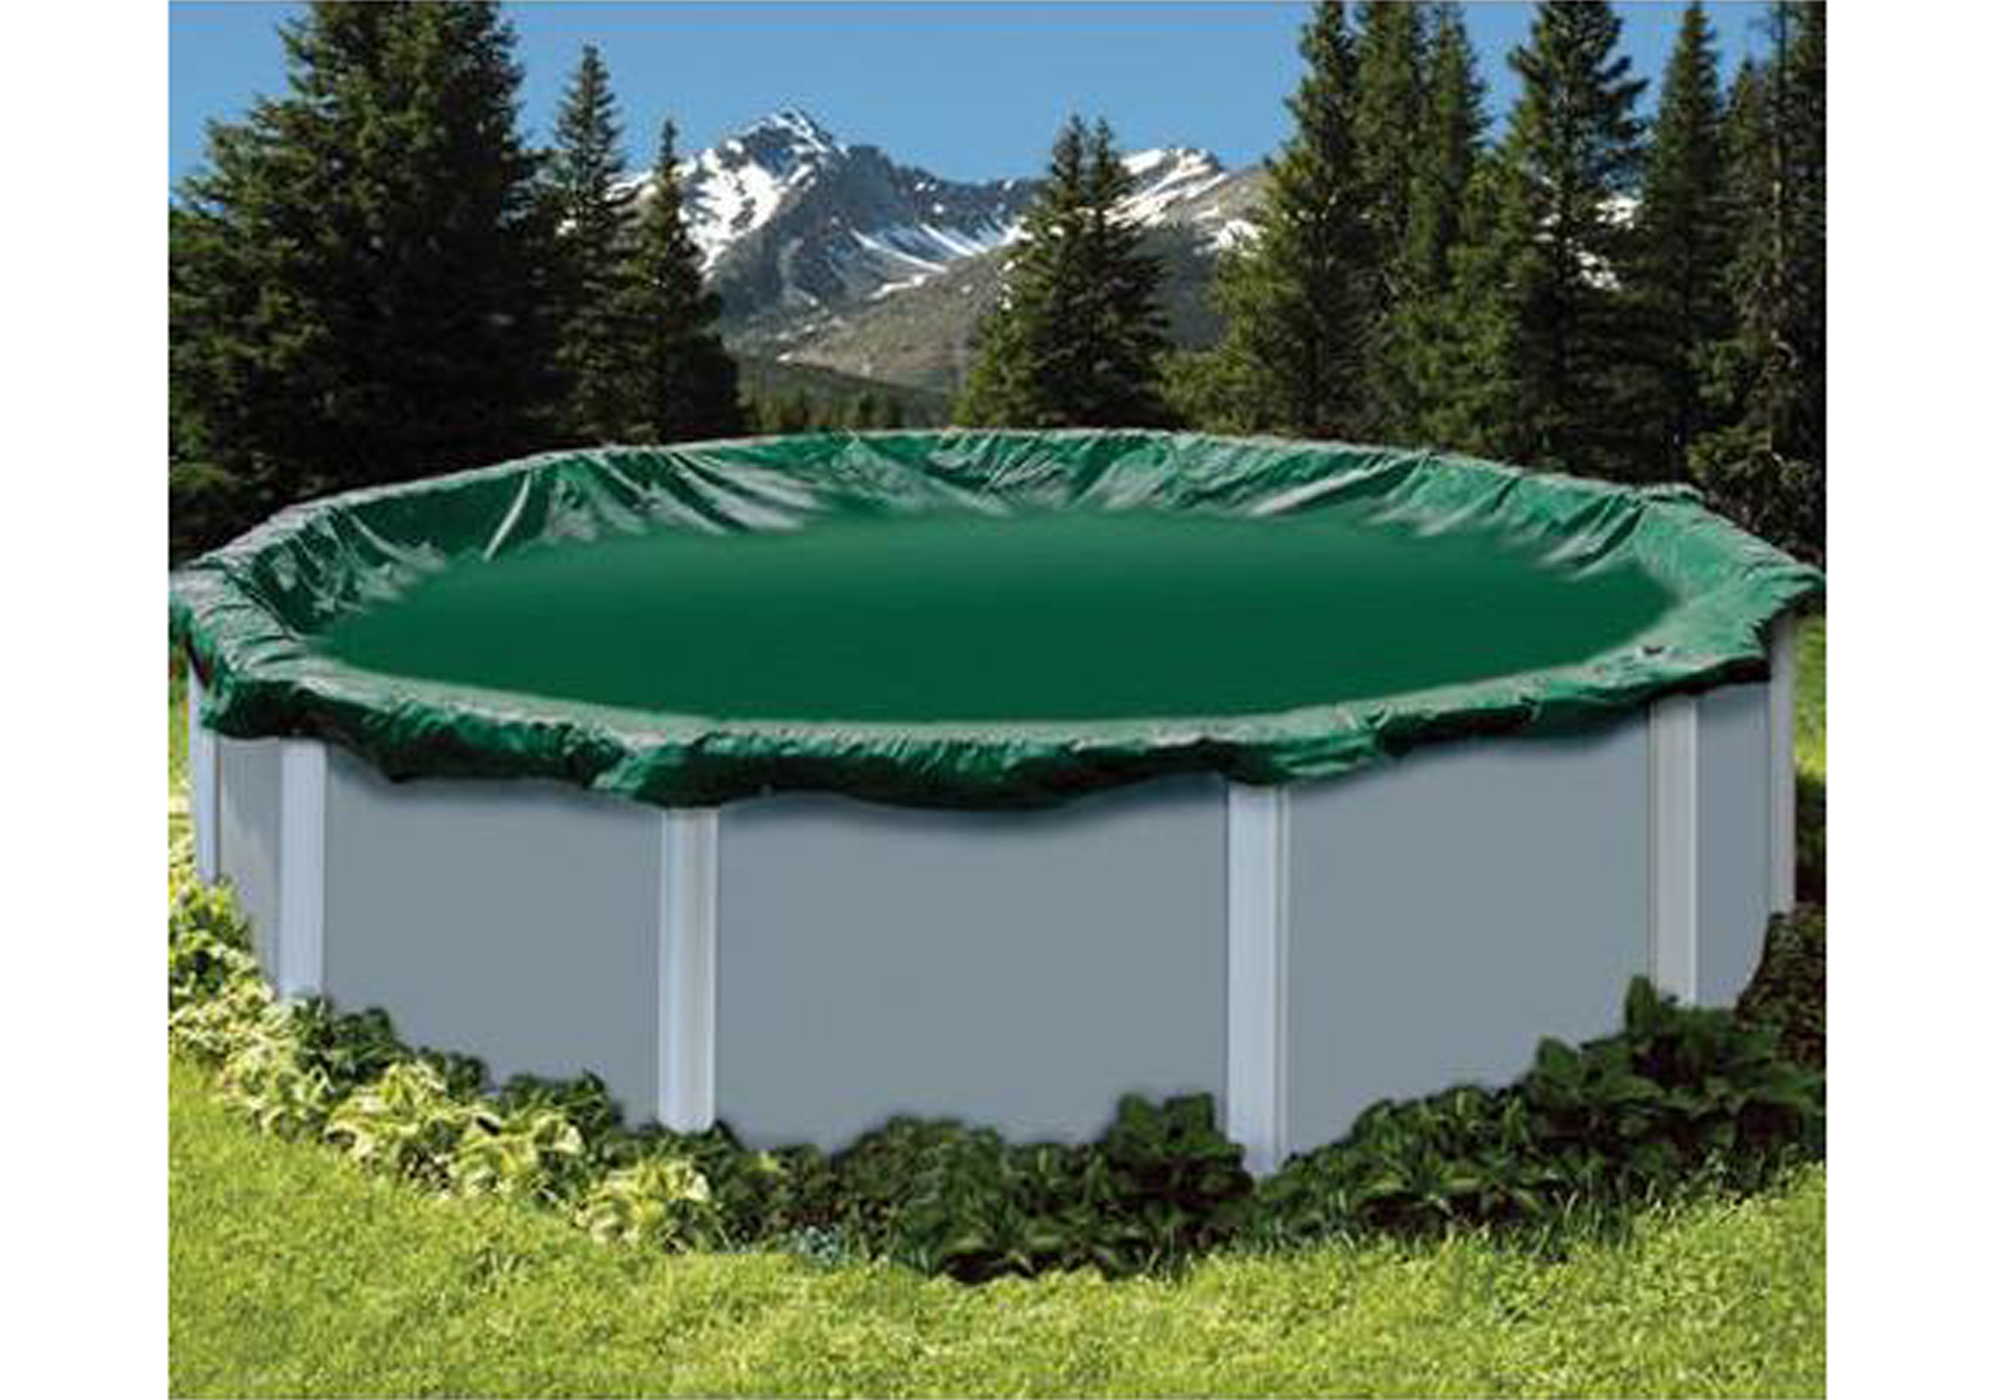 28 39 Ft Round Snow2winter Green Swimming Pool Above Ground Winter Cover Ebay